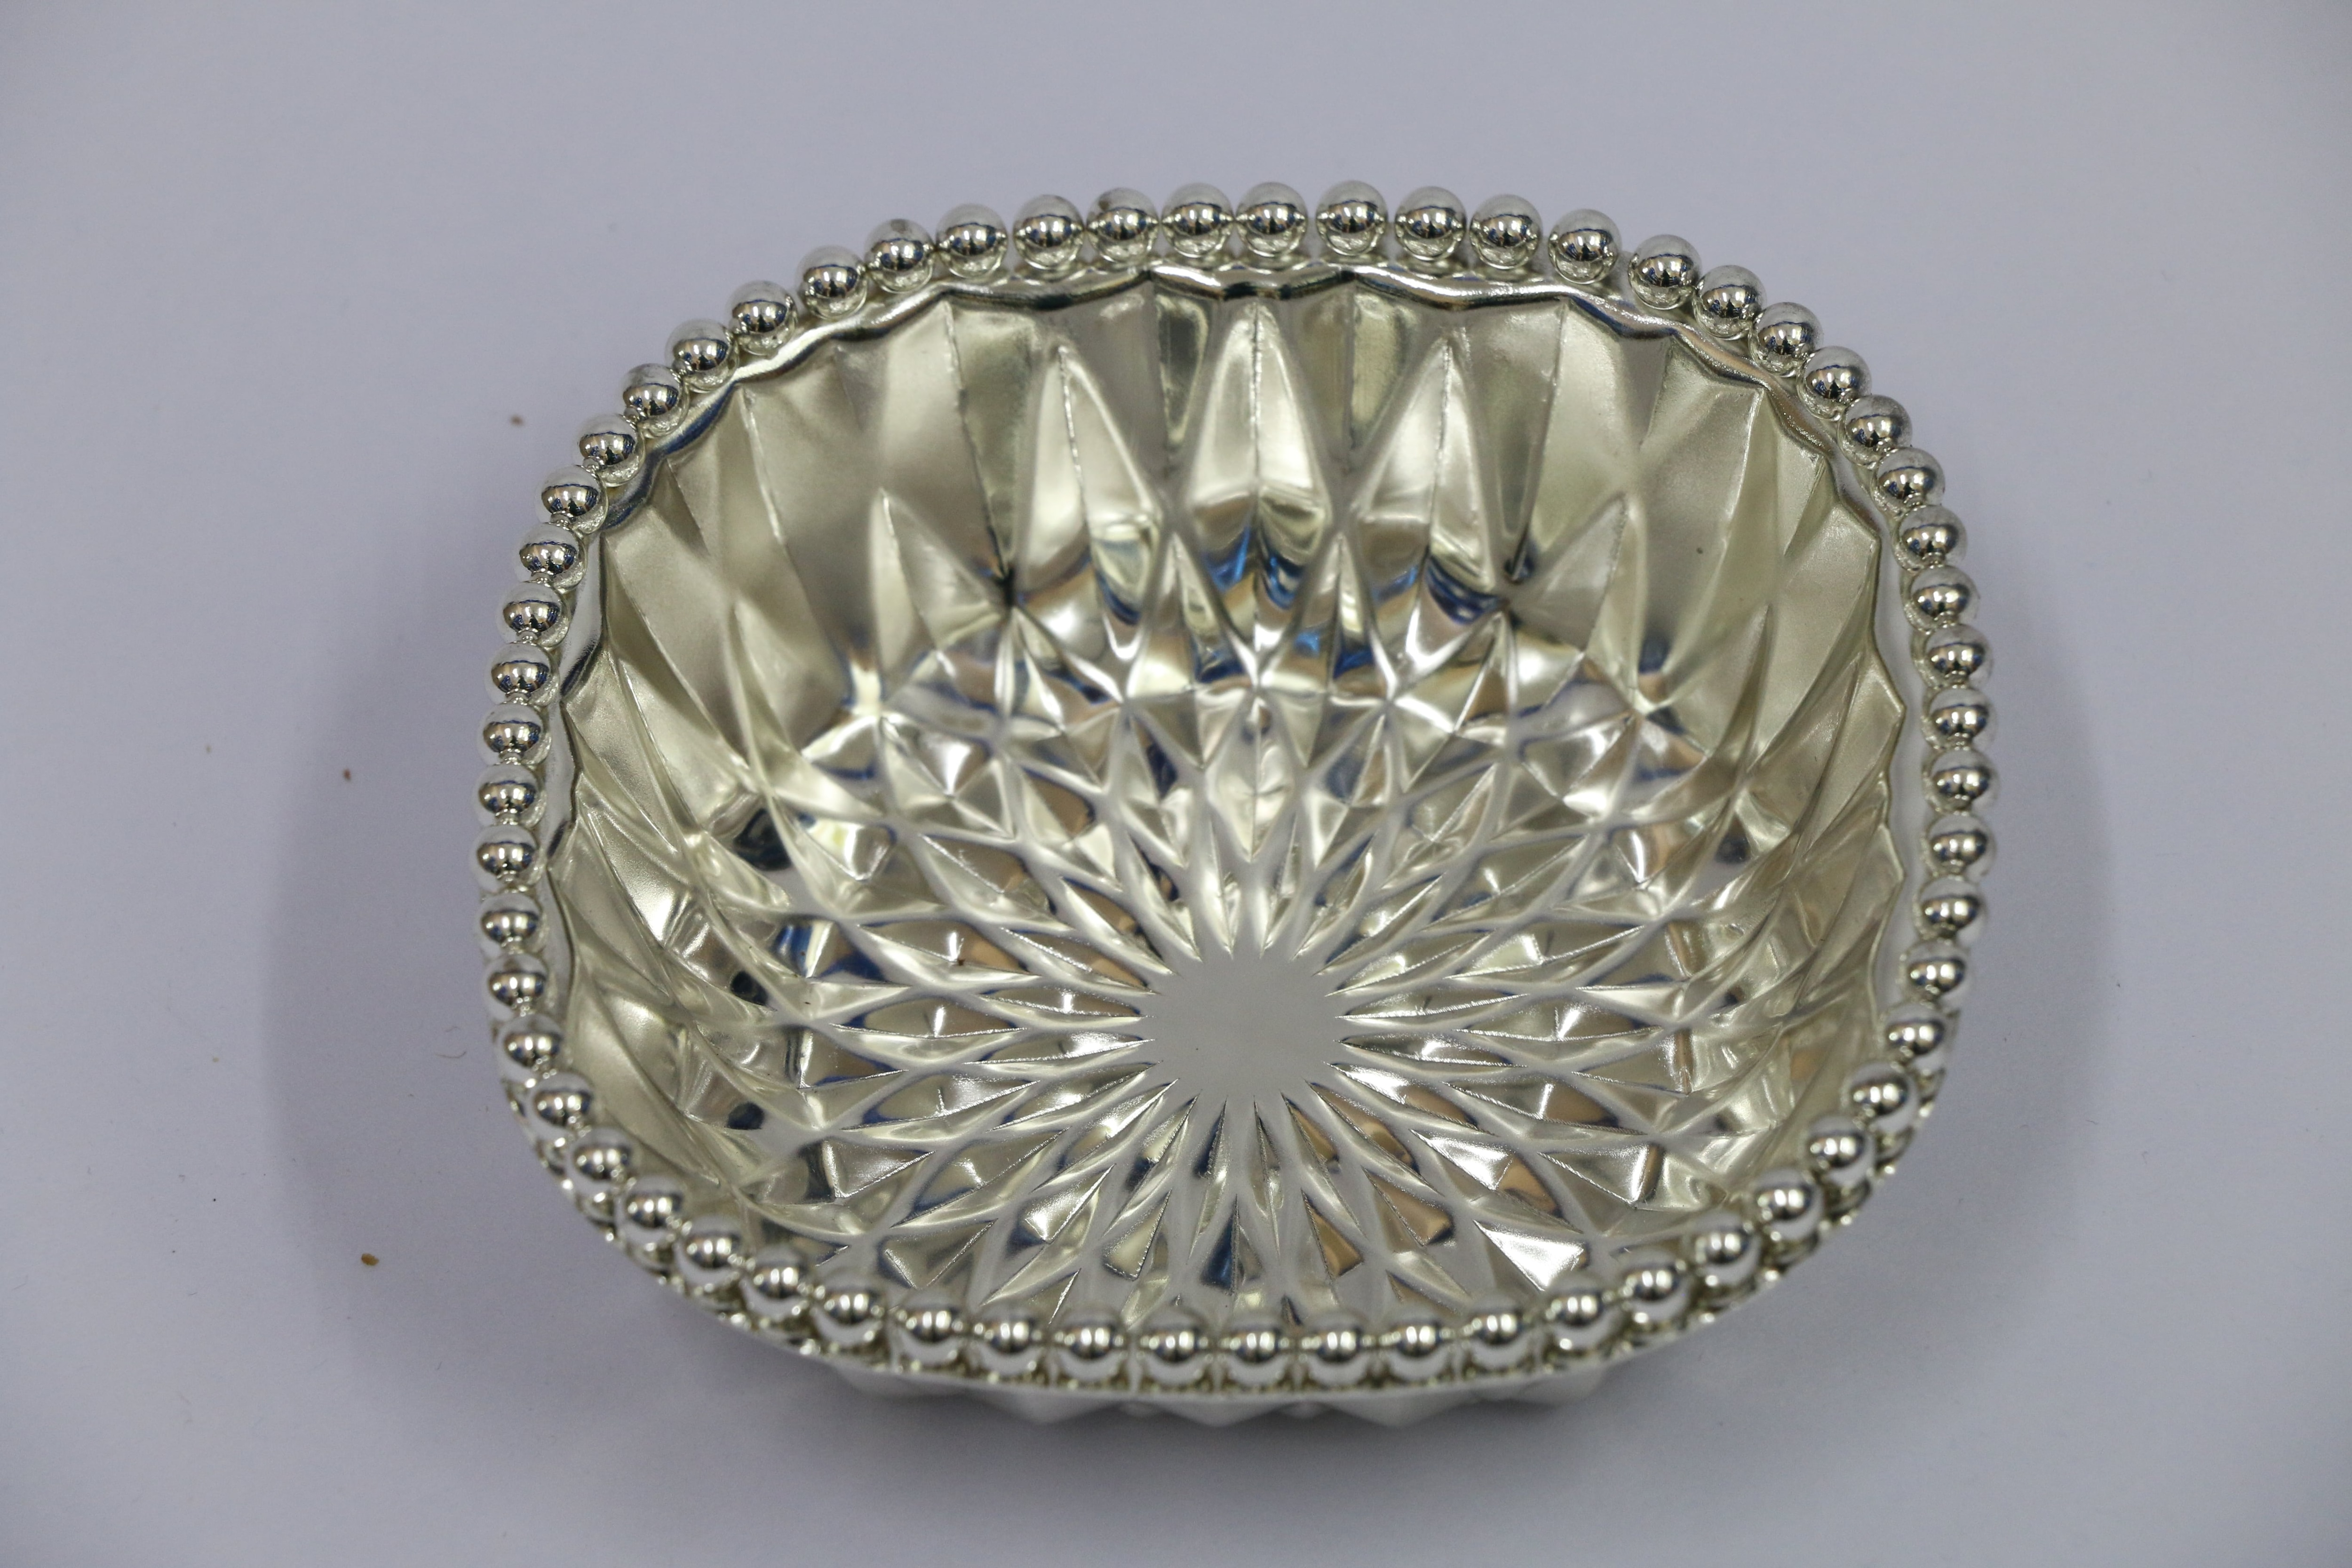 German Silver Plated and Imported bowl in Bangalore Sambhav Products  We also import products as well as export.  German silver plated bowls gives an elegant look.  Shape : Square Metal : German Silver Plated  Quality : Superior Quality  Long Lasting Period : 10 Years.